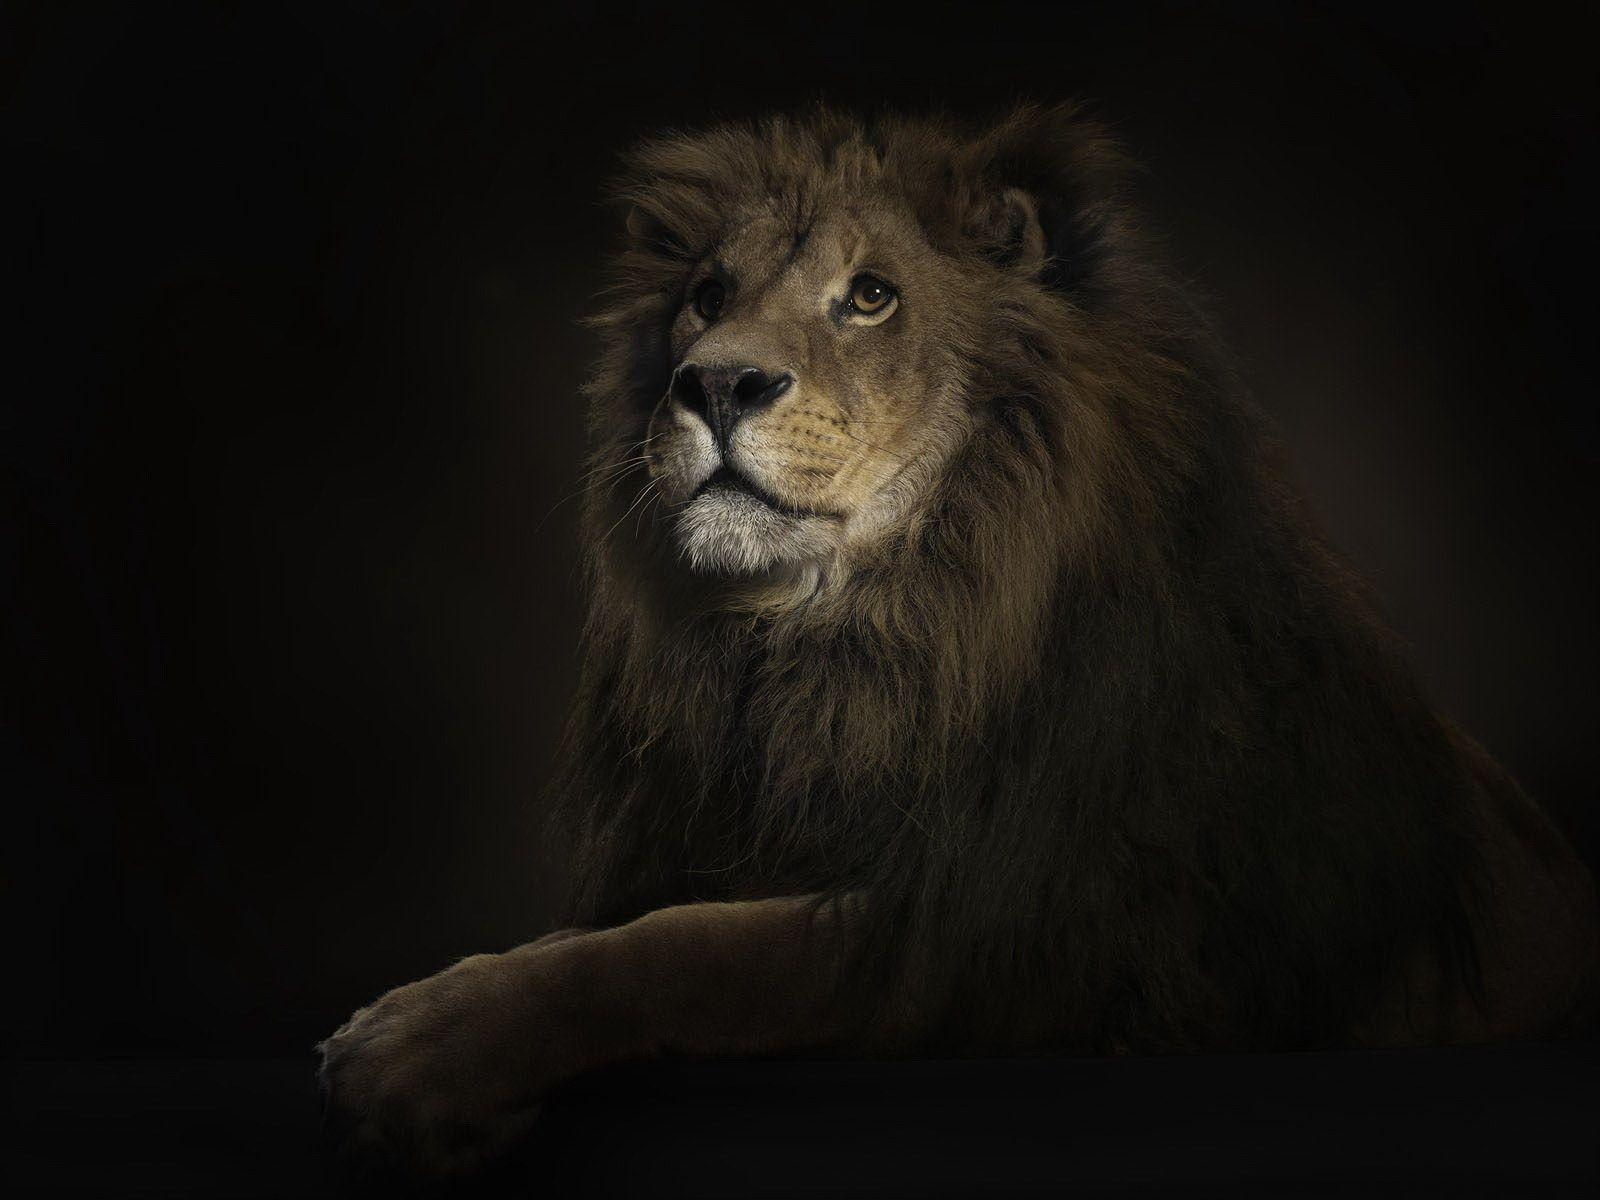 3D Lion Wallpaper - Animal Wallpapers (1944) ilikewalls.